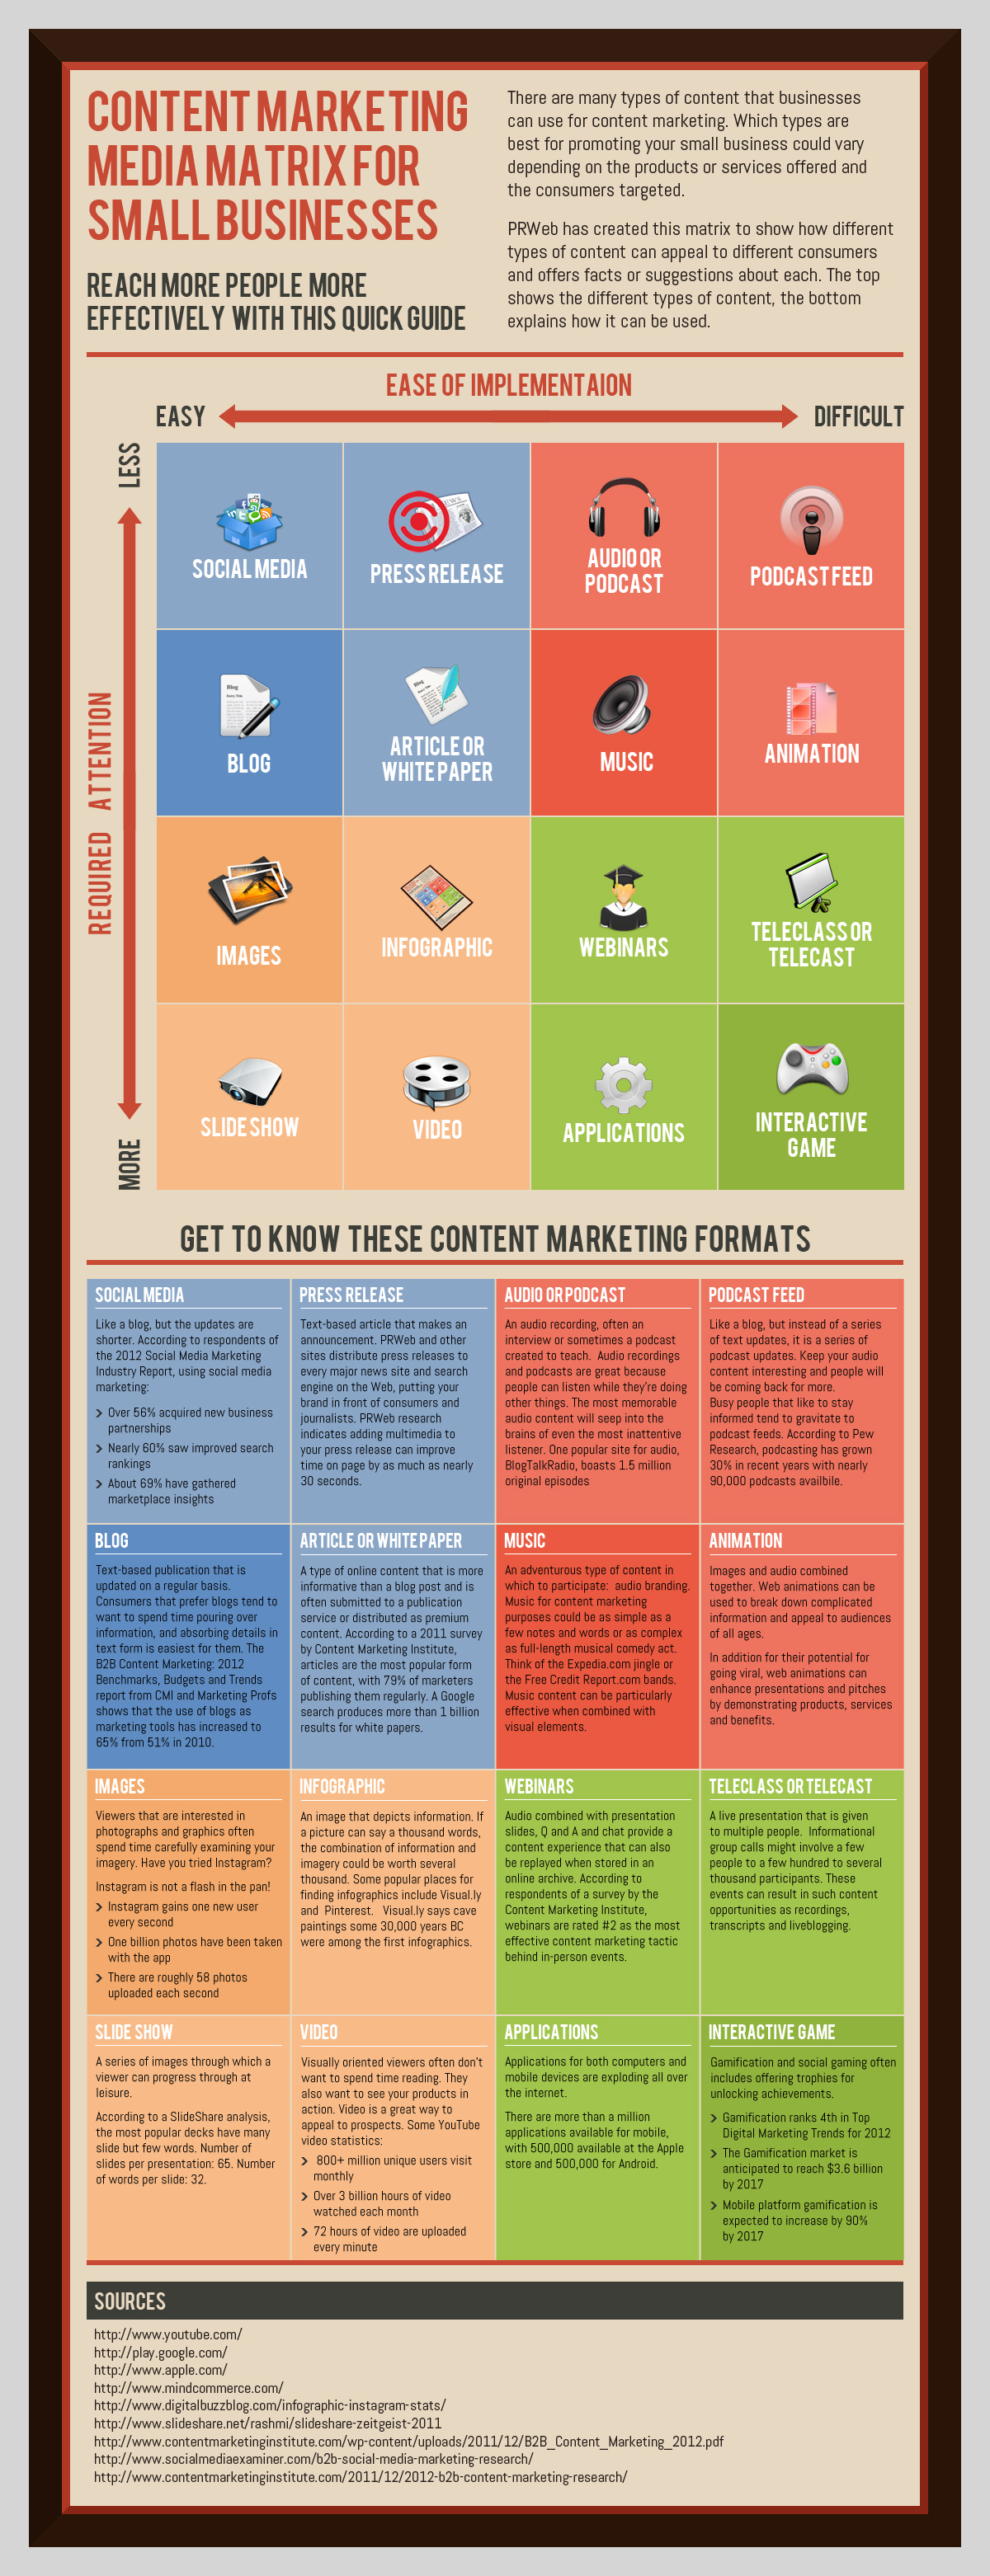 The Content Marketing Matrix for Small Businesses